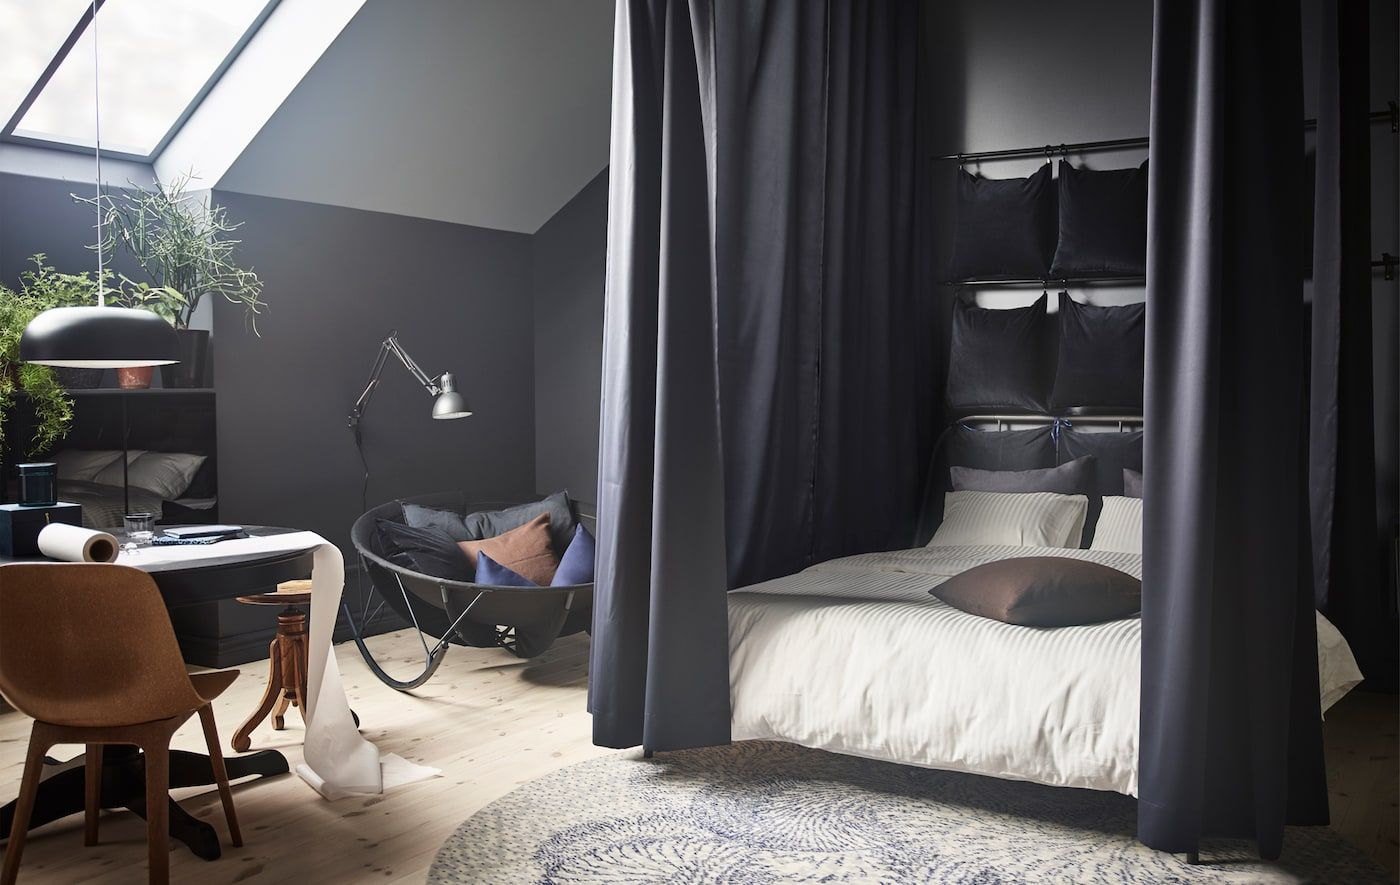 You Can Use Ikea Products To Make A Cocoon Bed Install A Track Rail System On The Ceiling Around A Bed Green Curtains Bedroom Sanctuary Bedroom Modern Bedroom